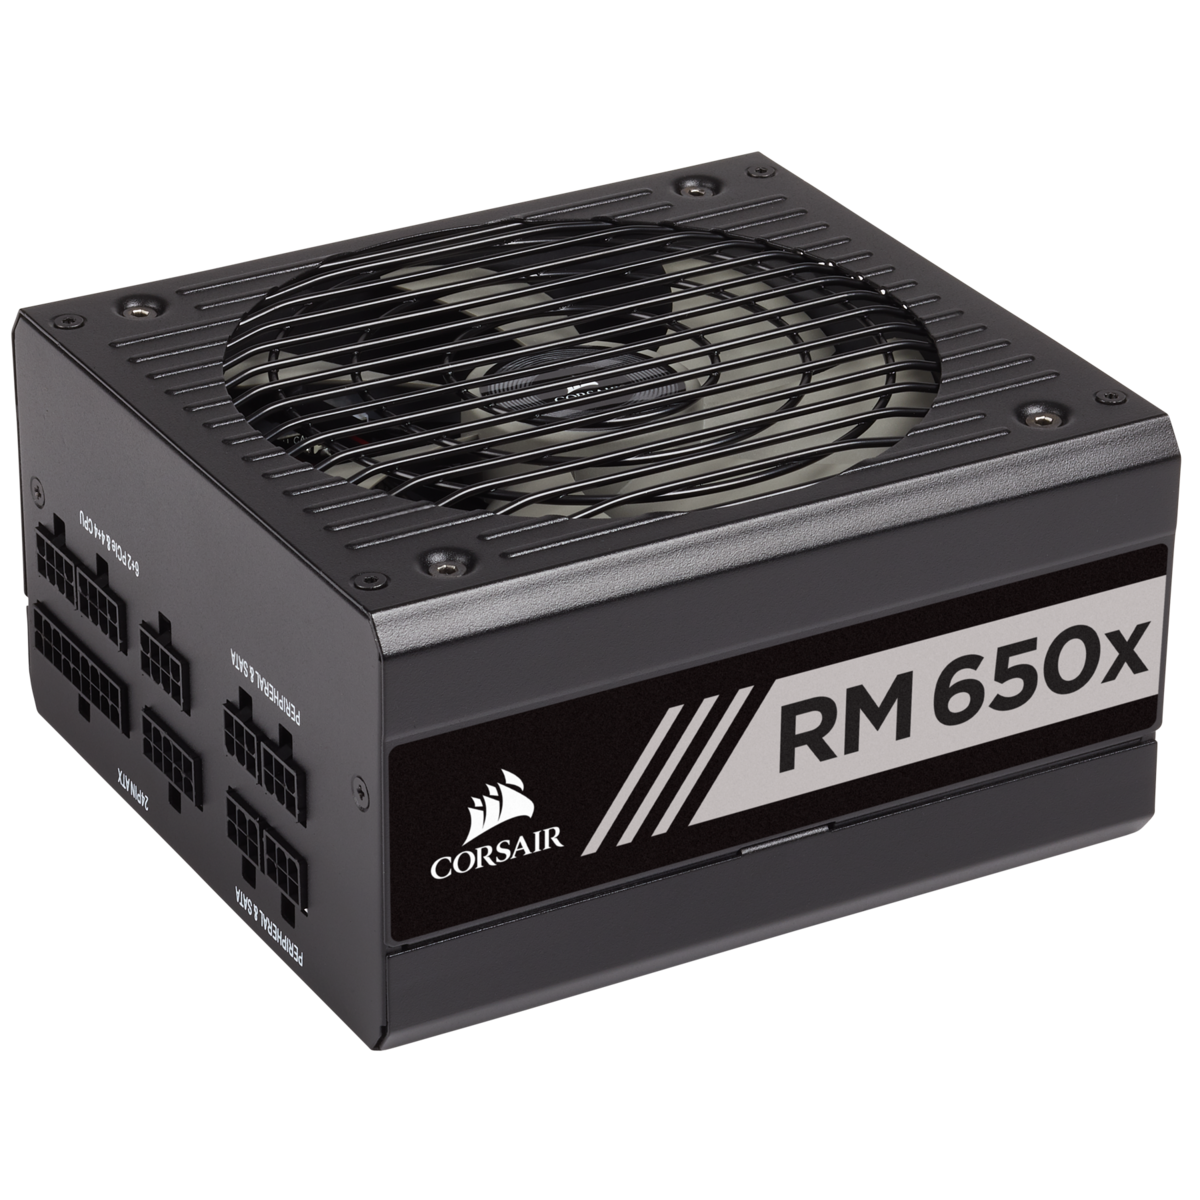 (650W Gold Modular) Corsair RM650X 80 Plus GOLD